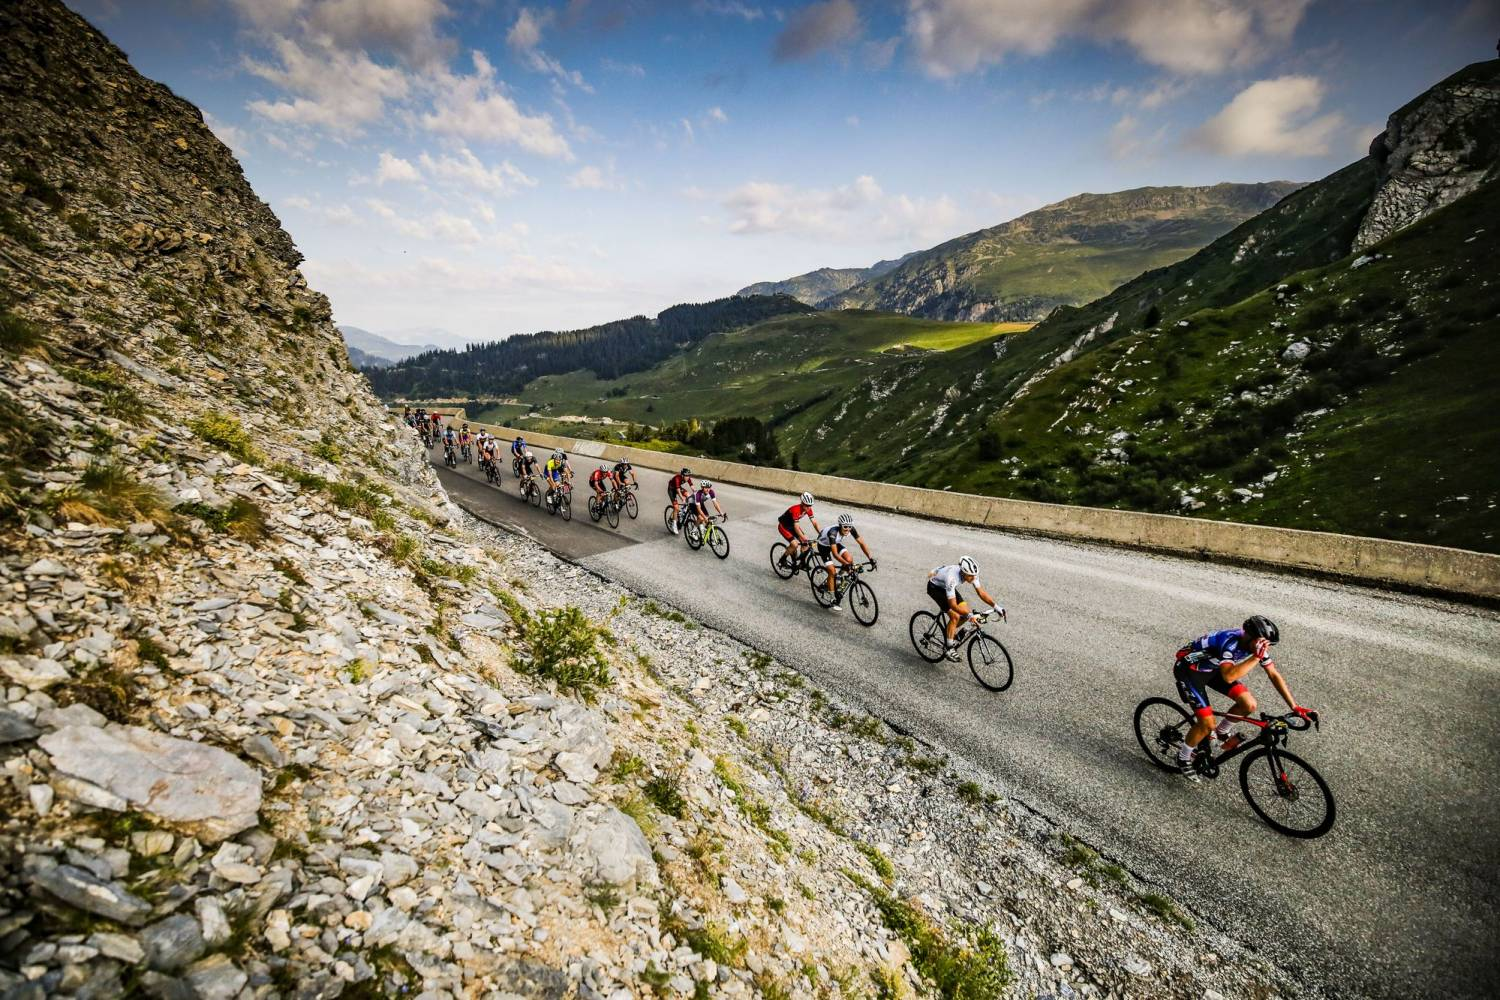 ETAPE DU TOUR ENTRY - PURCHASE YOUR 2020 ENTRY NOW!